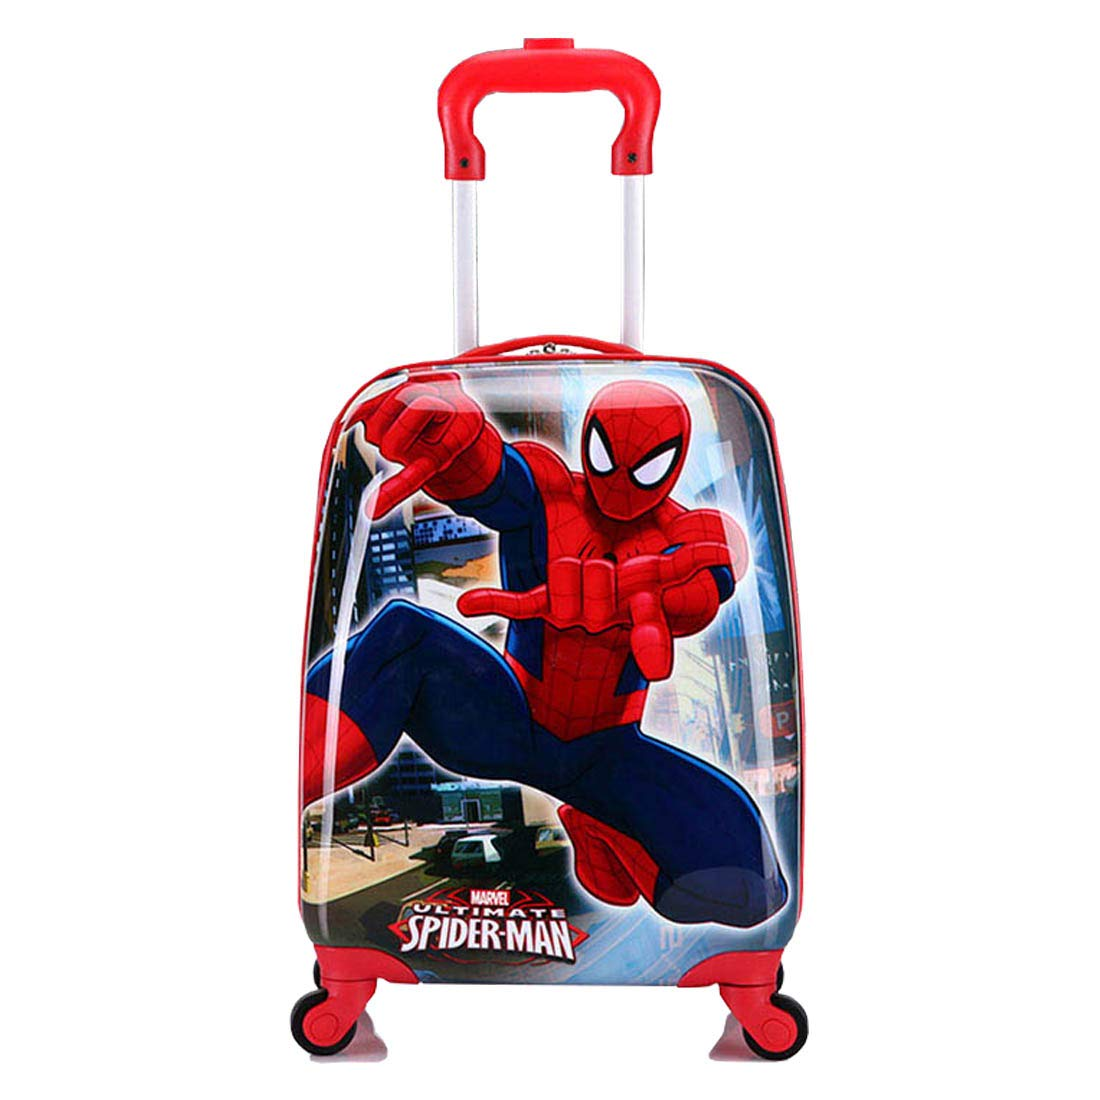 MOREFUN Spiderman Luggage 18 Inch Carry on Kids Luggage Hard Side Spinner Suitcase Lightweight Wheels